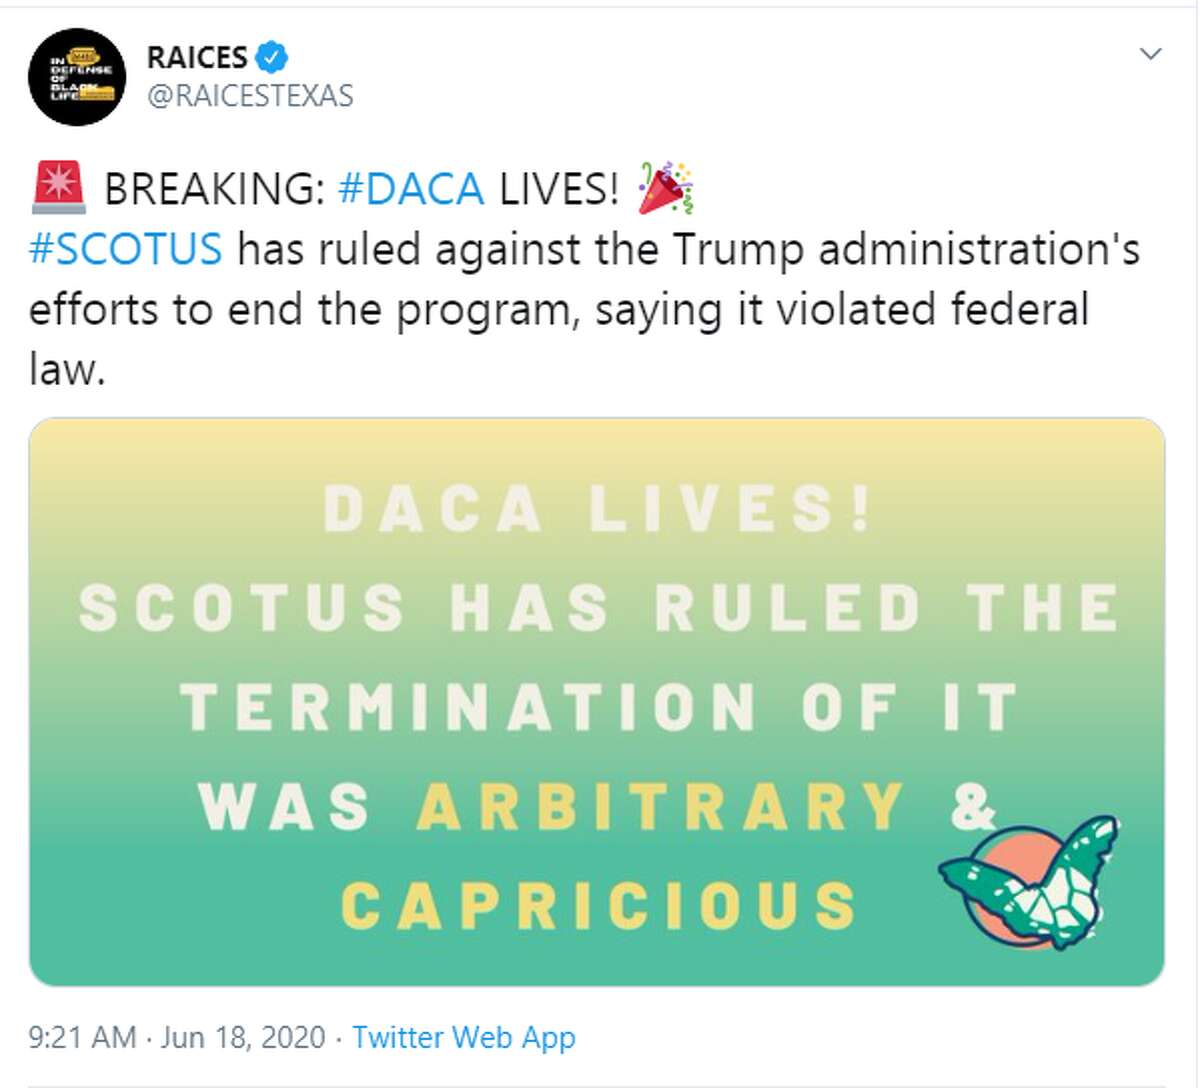 RAICES: BREAKING: #DACA LIVES! #SCOTUS has ruled against the Trump administration's efforts to end the program, saying it violated federal law.